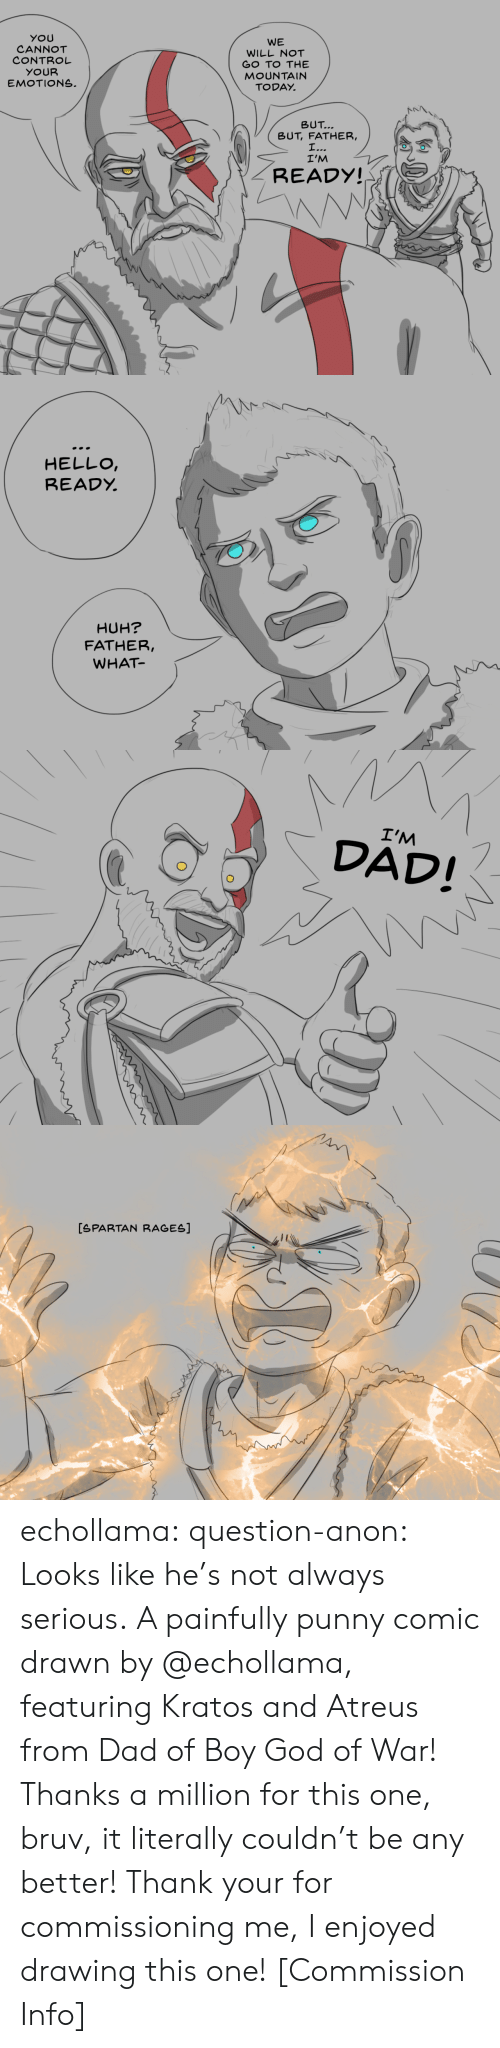 Dad, God, and Hello: YOU  CANNOT  CONTROL  YOUR  EMOTIONS.  WE  WILL NOT  GO TO THE  MOUNTAIN  TODAY.  トN\  \  BUT  BUT, FATHER,  I'M  READY!   HELLO  READỵ  HUH?  FATHER,  WHAT   I'M  DAD!   [SPARTAN RAGES] echollama:  question-anon:  Looks like he's not always serious. A painfully punny comic drawn by @echollama, featuring Kratos and Atreus from Dad of Boy God of War! Thanks a million for this one, bruv, it literally couldn't be any better!  Thank your for commissioning me, I enjoyed drawing this one!    [Commission Info]